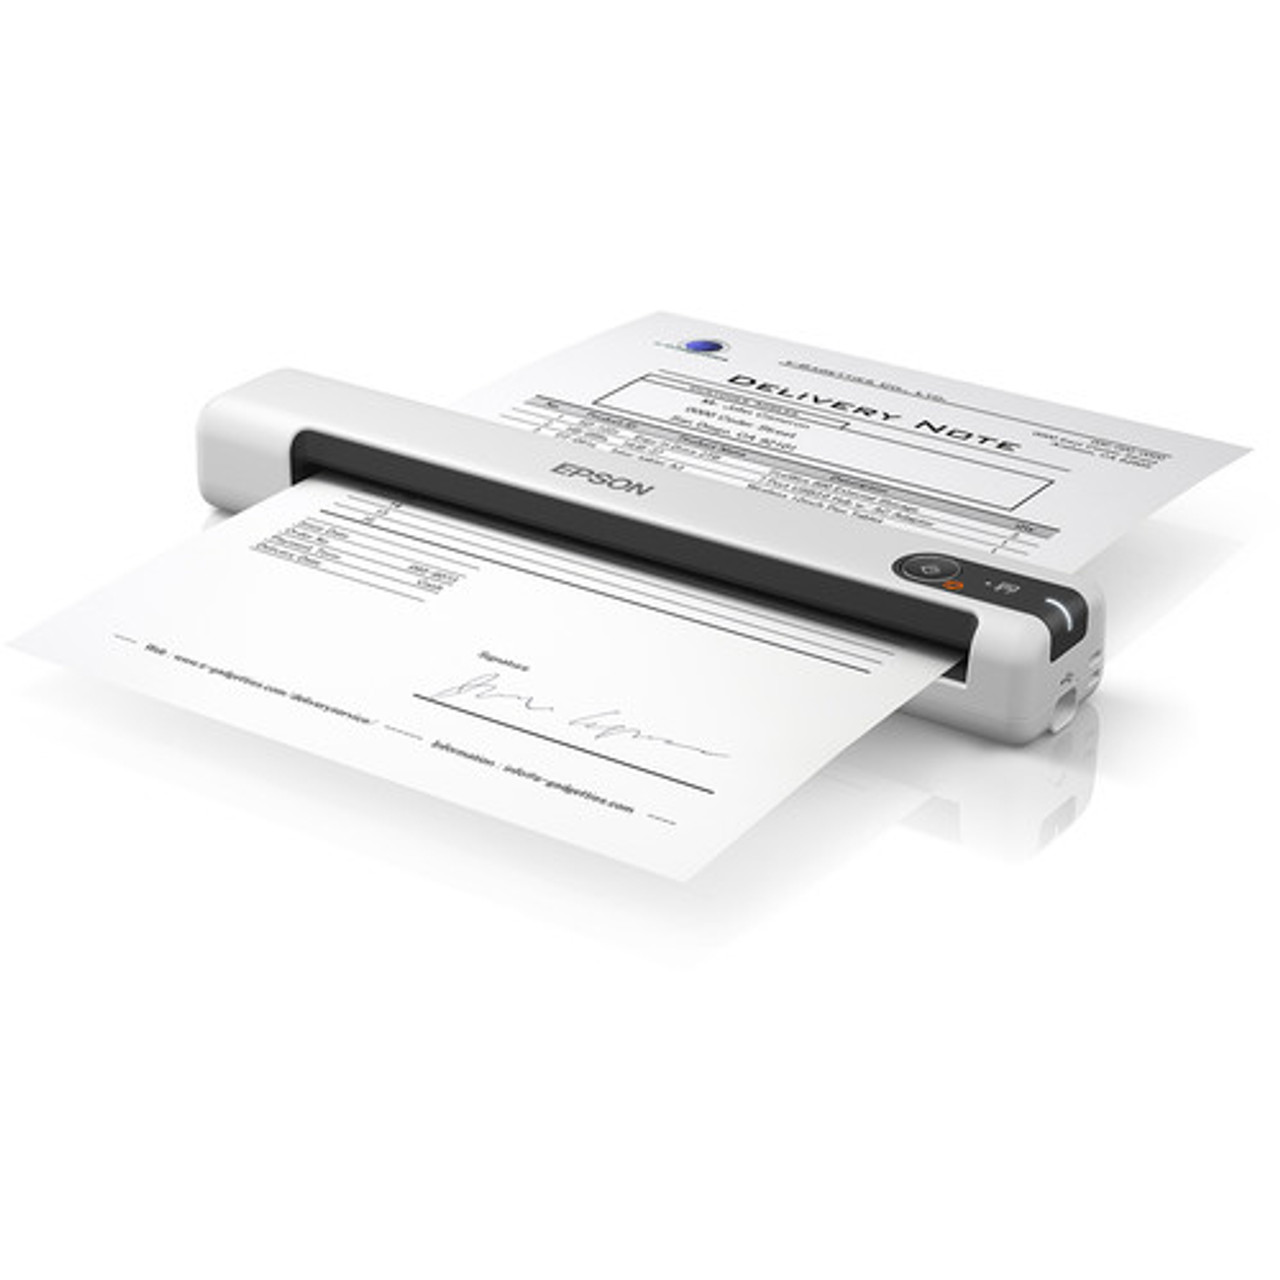 Epson B11B252202-RB DS-70 Portable Document Scanner – Certified Refurbished